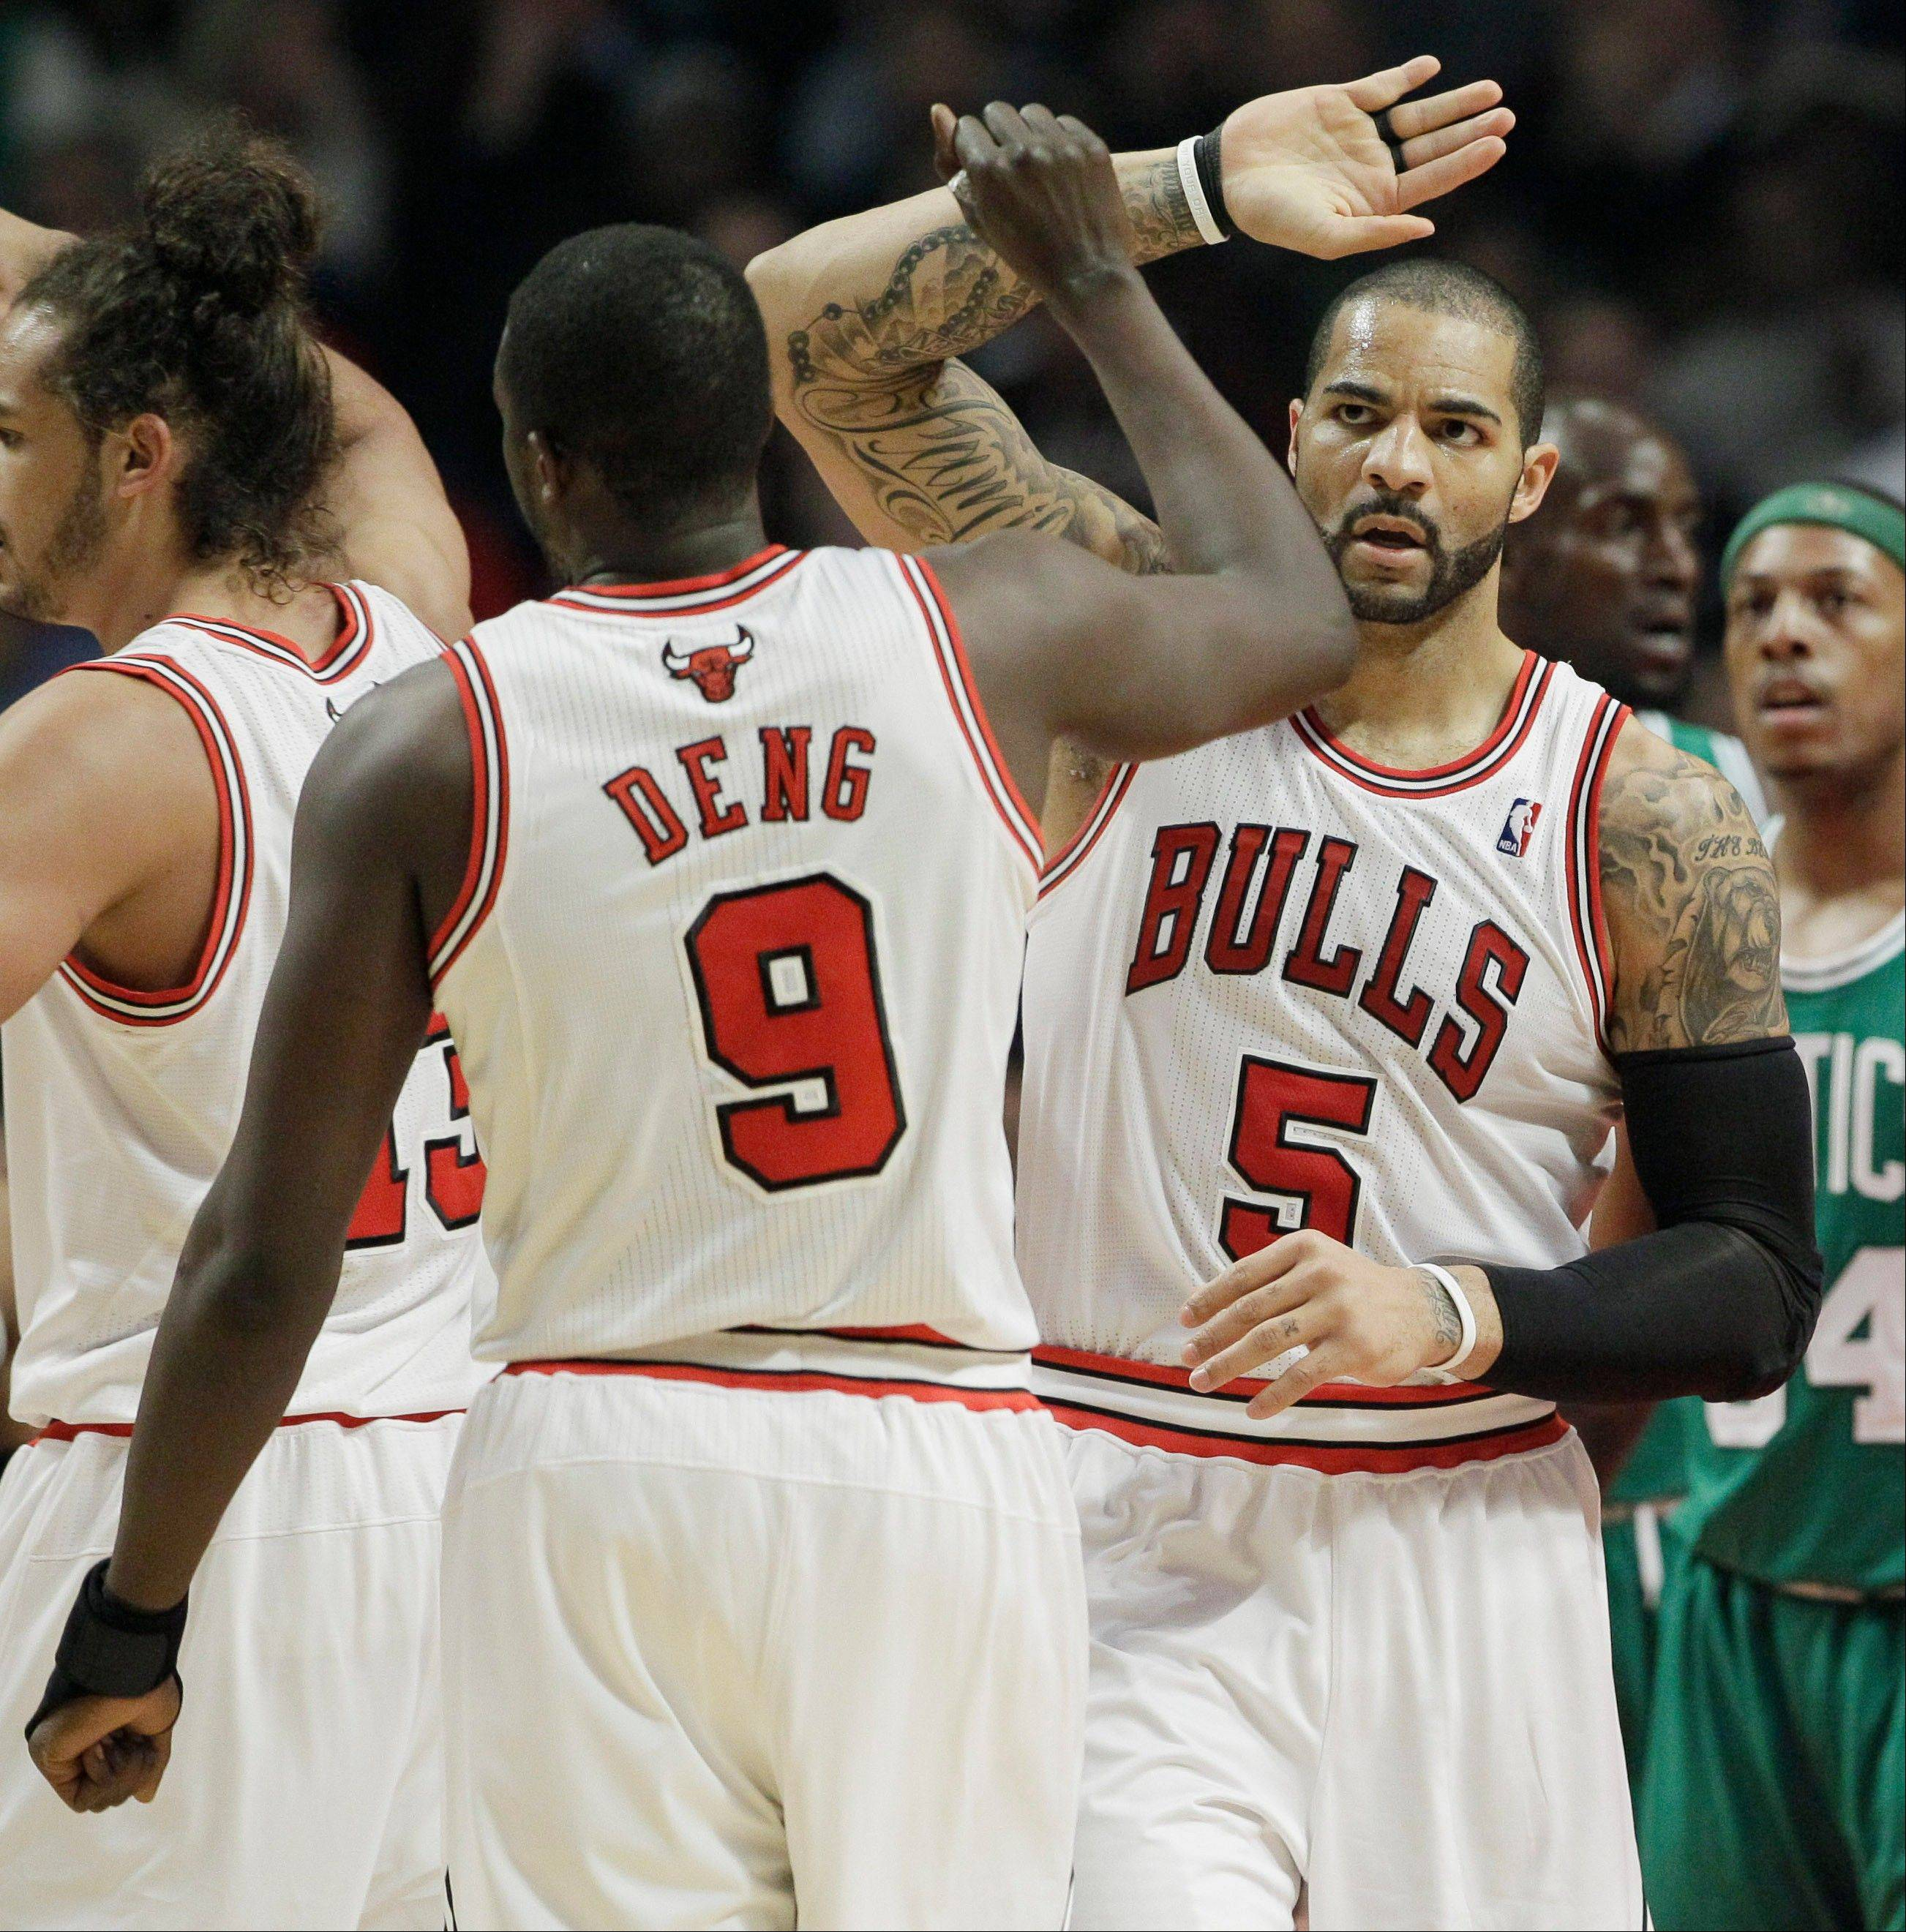 Bulls forward Carlos Boozer celebrates Thursday with forward Luol Deng after scoring a basket during the first half.